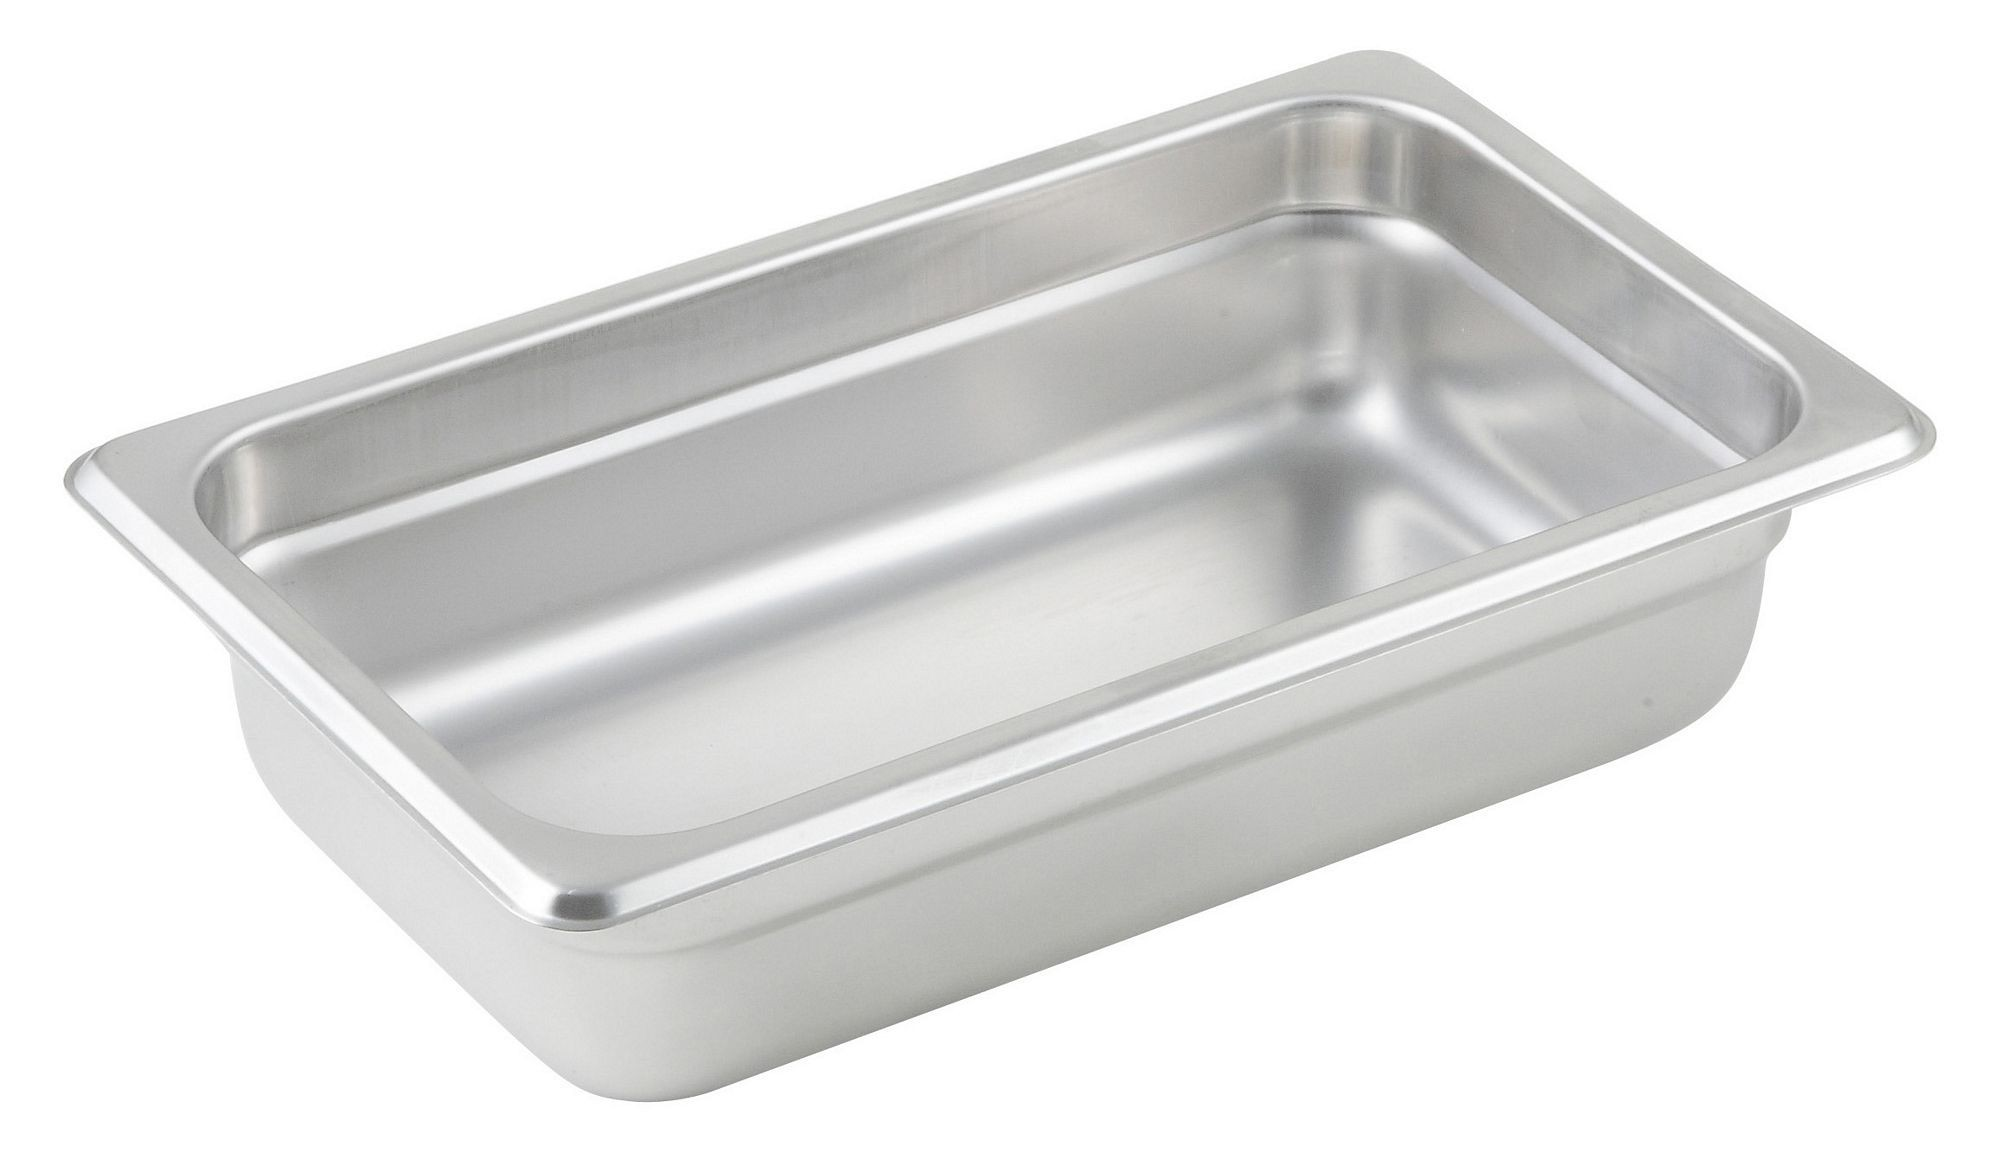 Winco Quarter Size Anti-Jamming Steam Table Pan (23 Gauge, 2.5